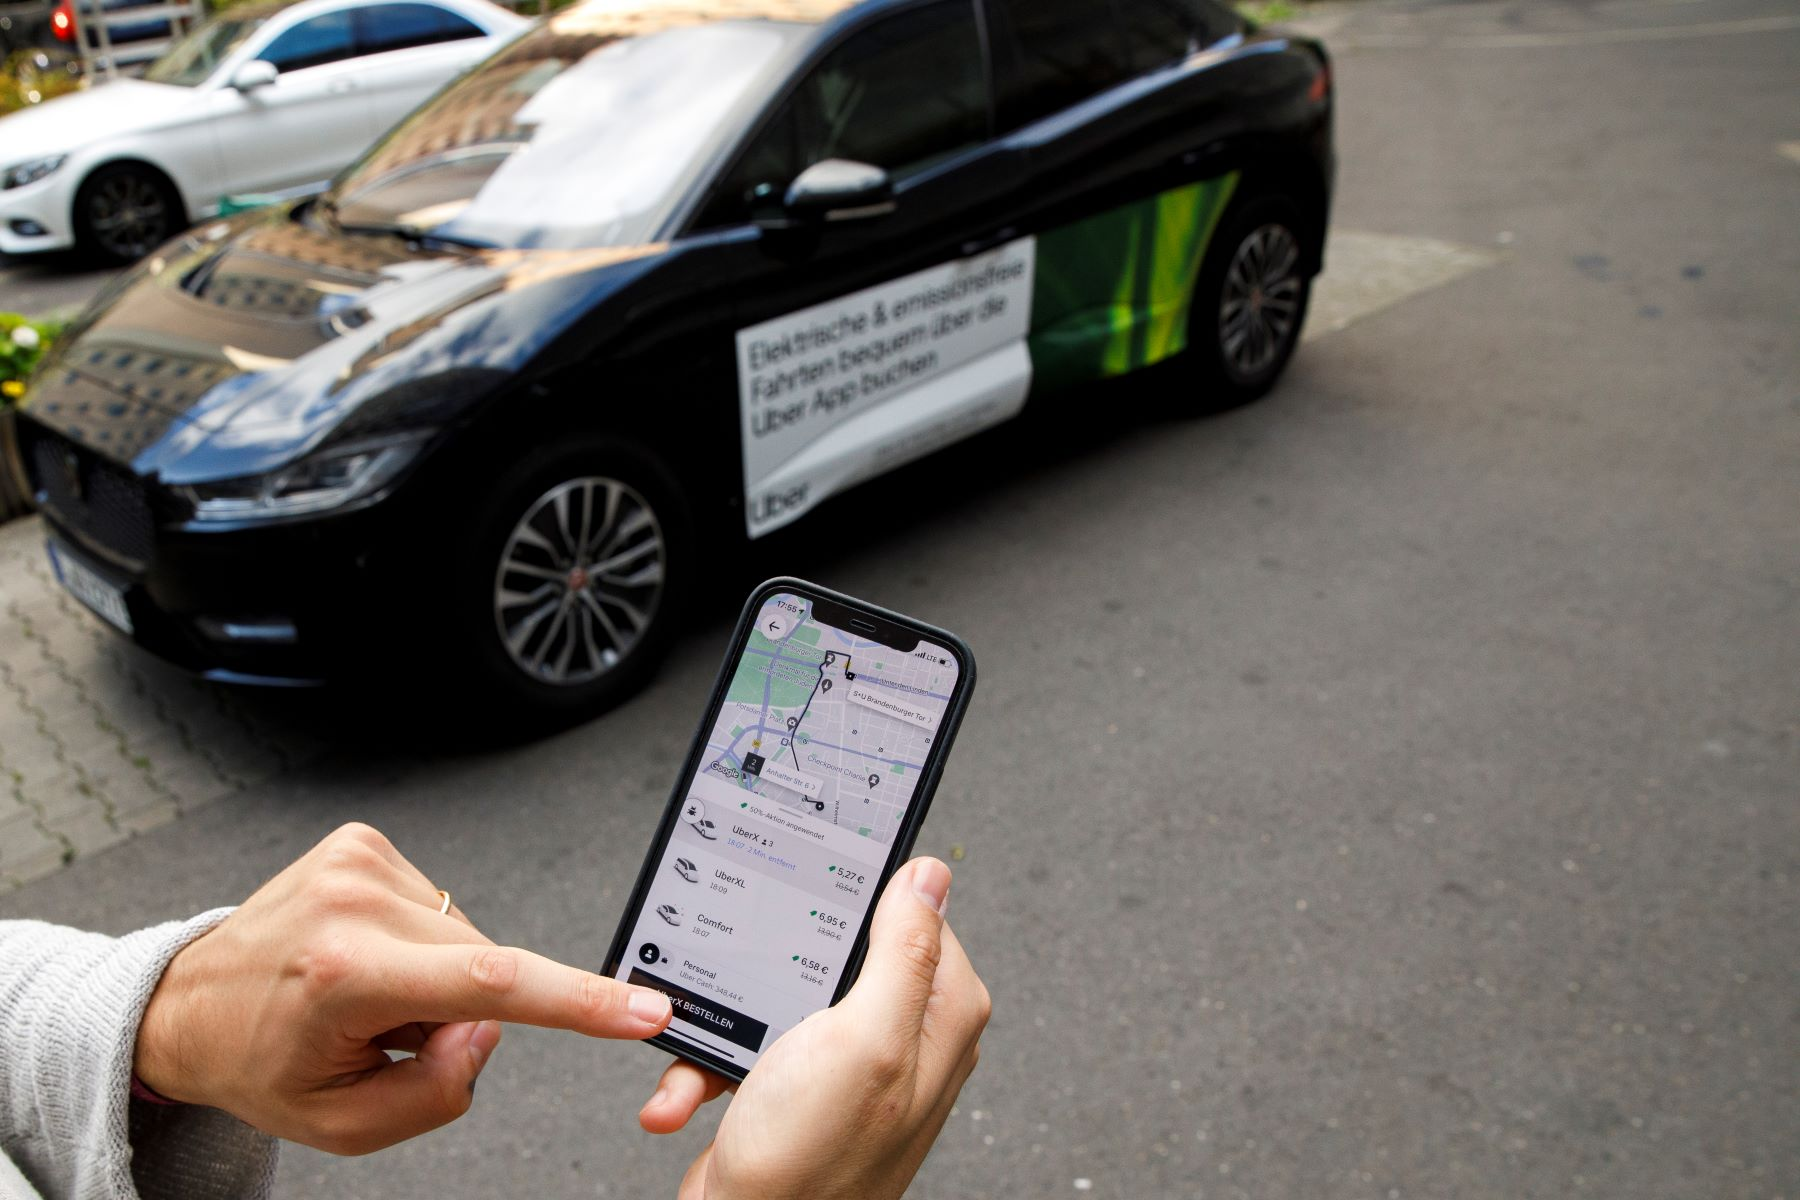 A customer ordering an Uber on their phone in Berlin, Germany